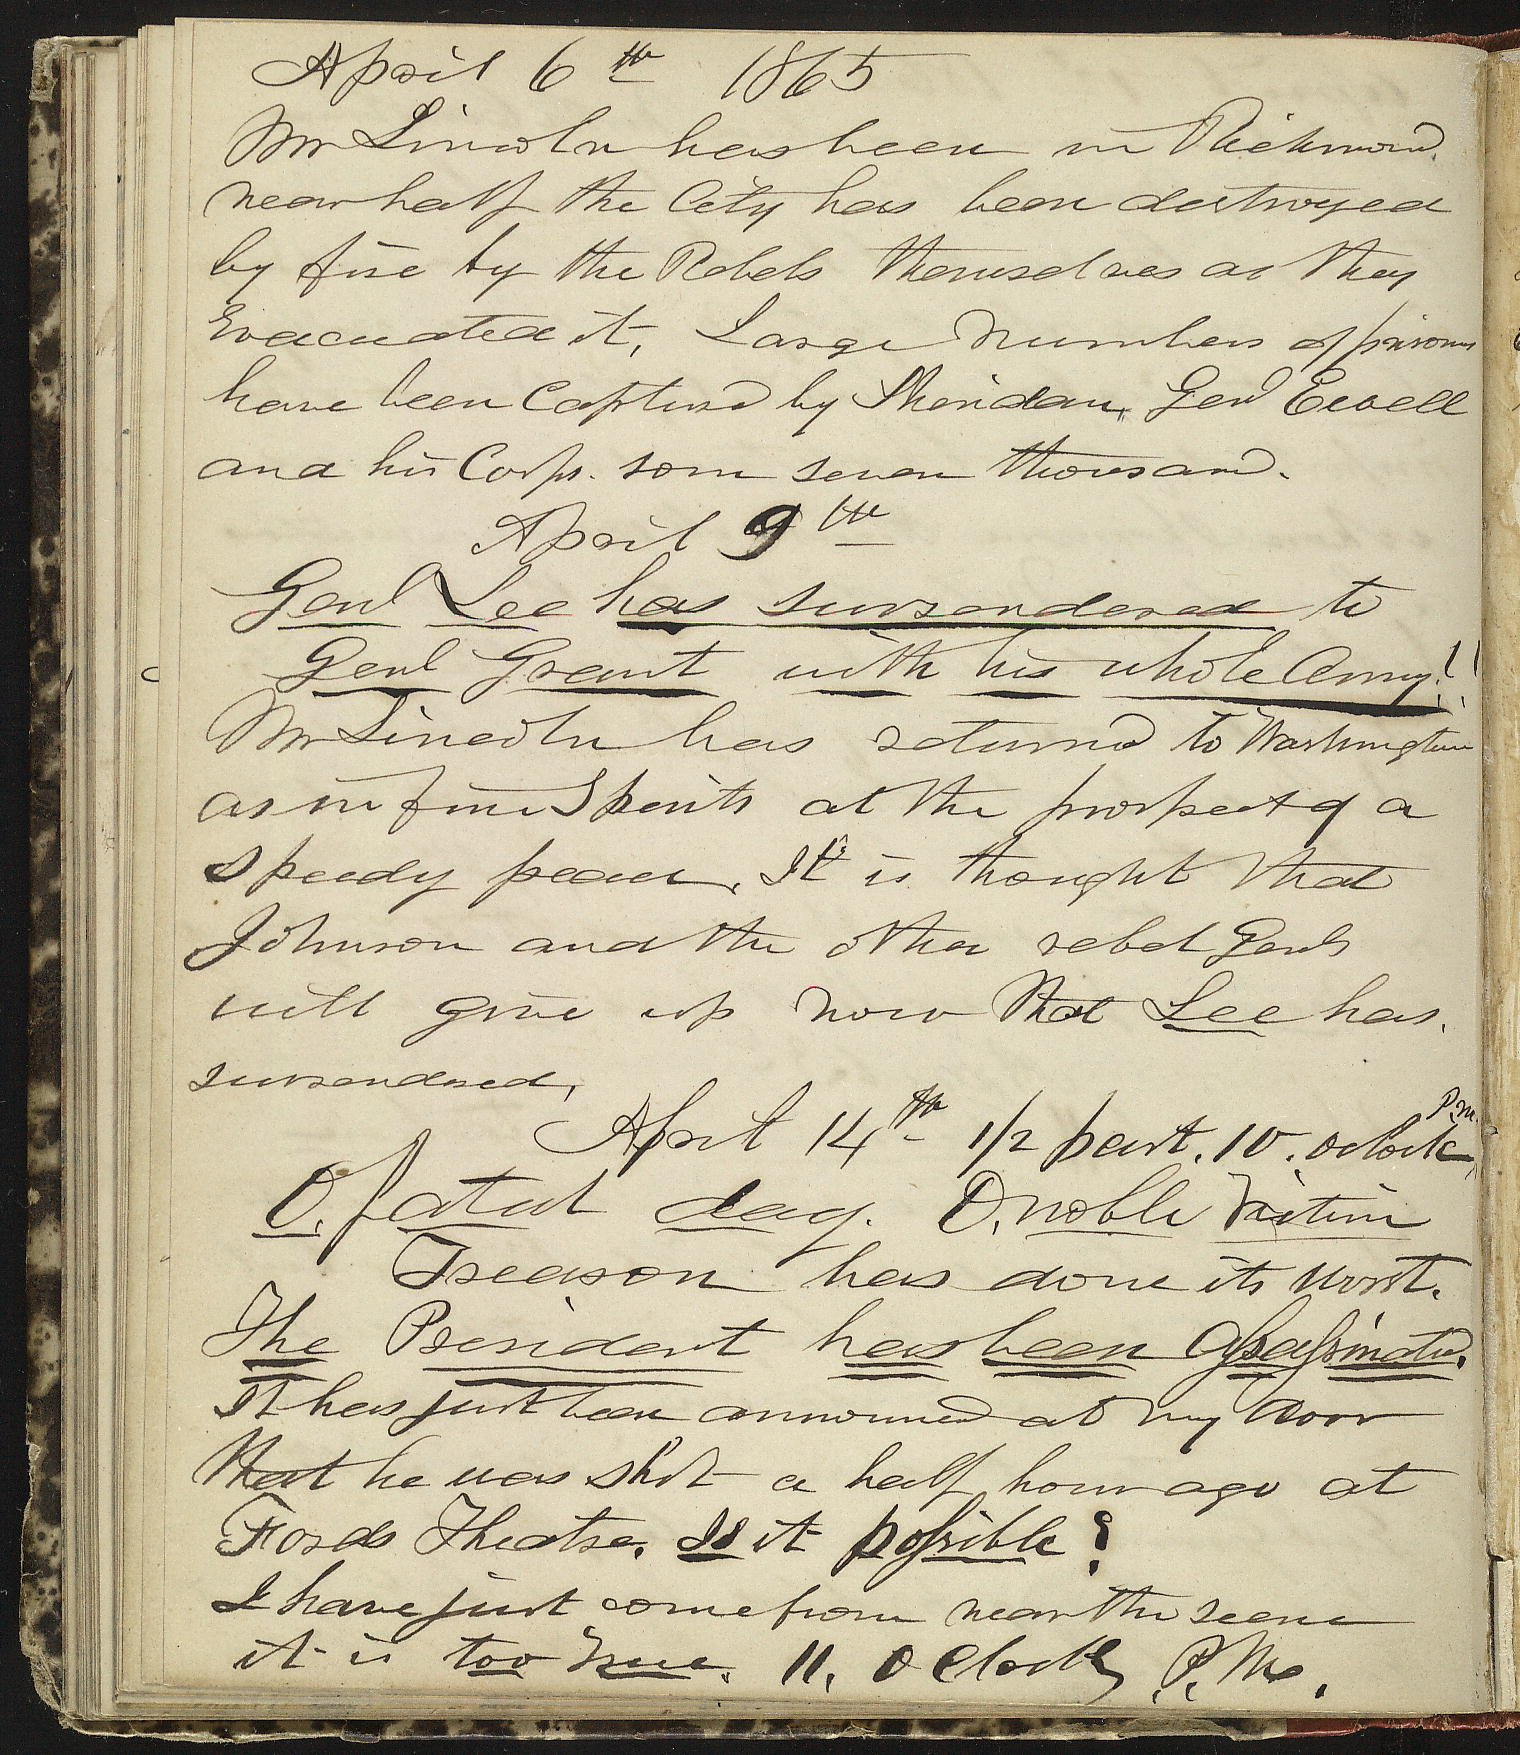 Horatio Nelson Taft Diary, April 6-14, 1865